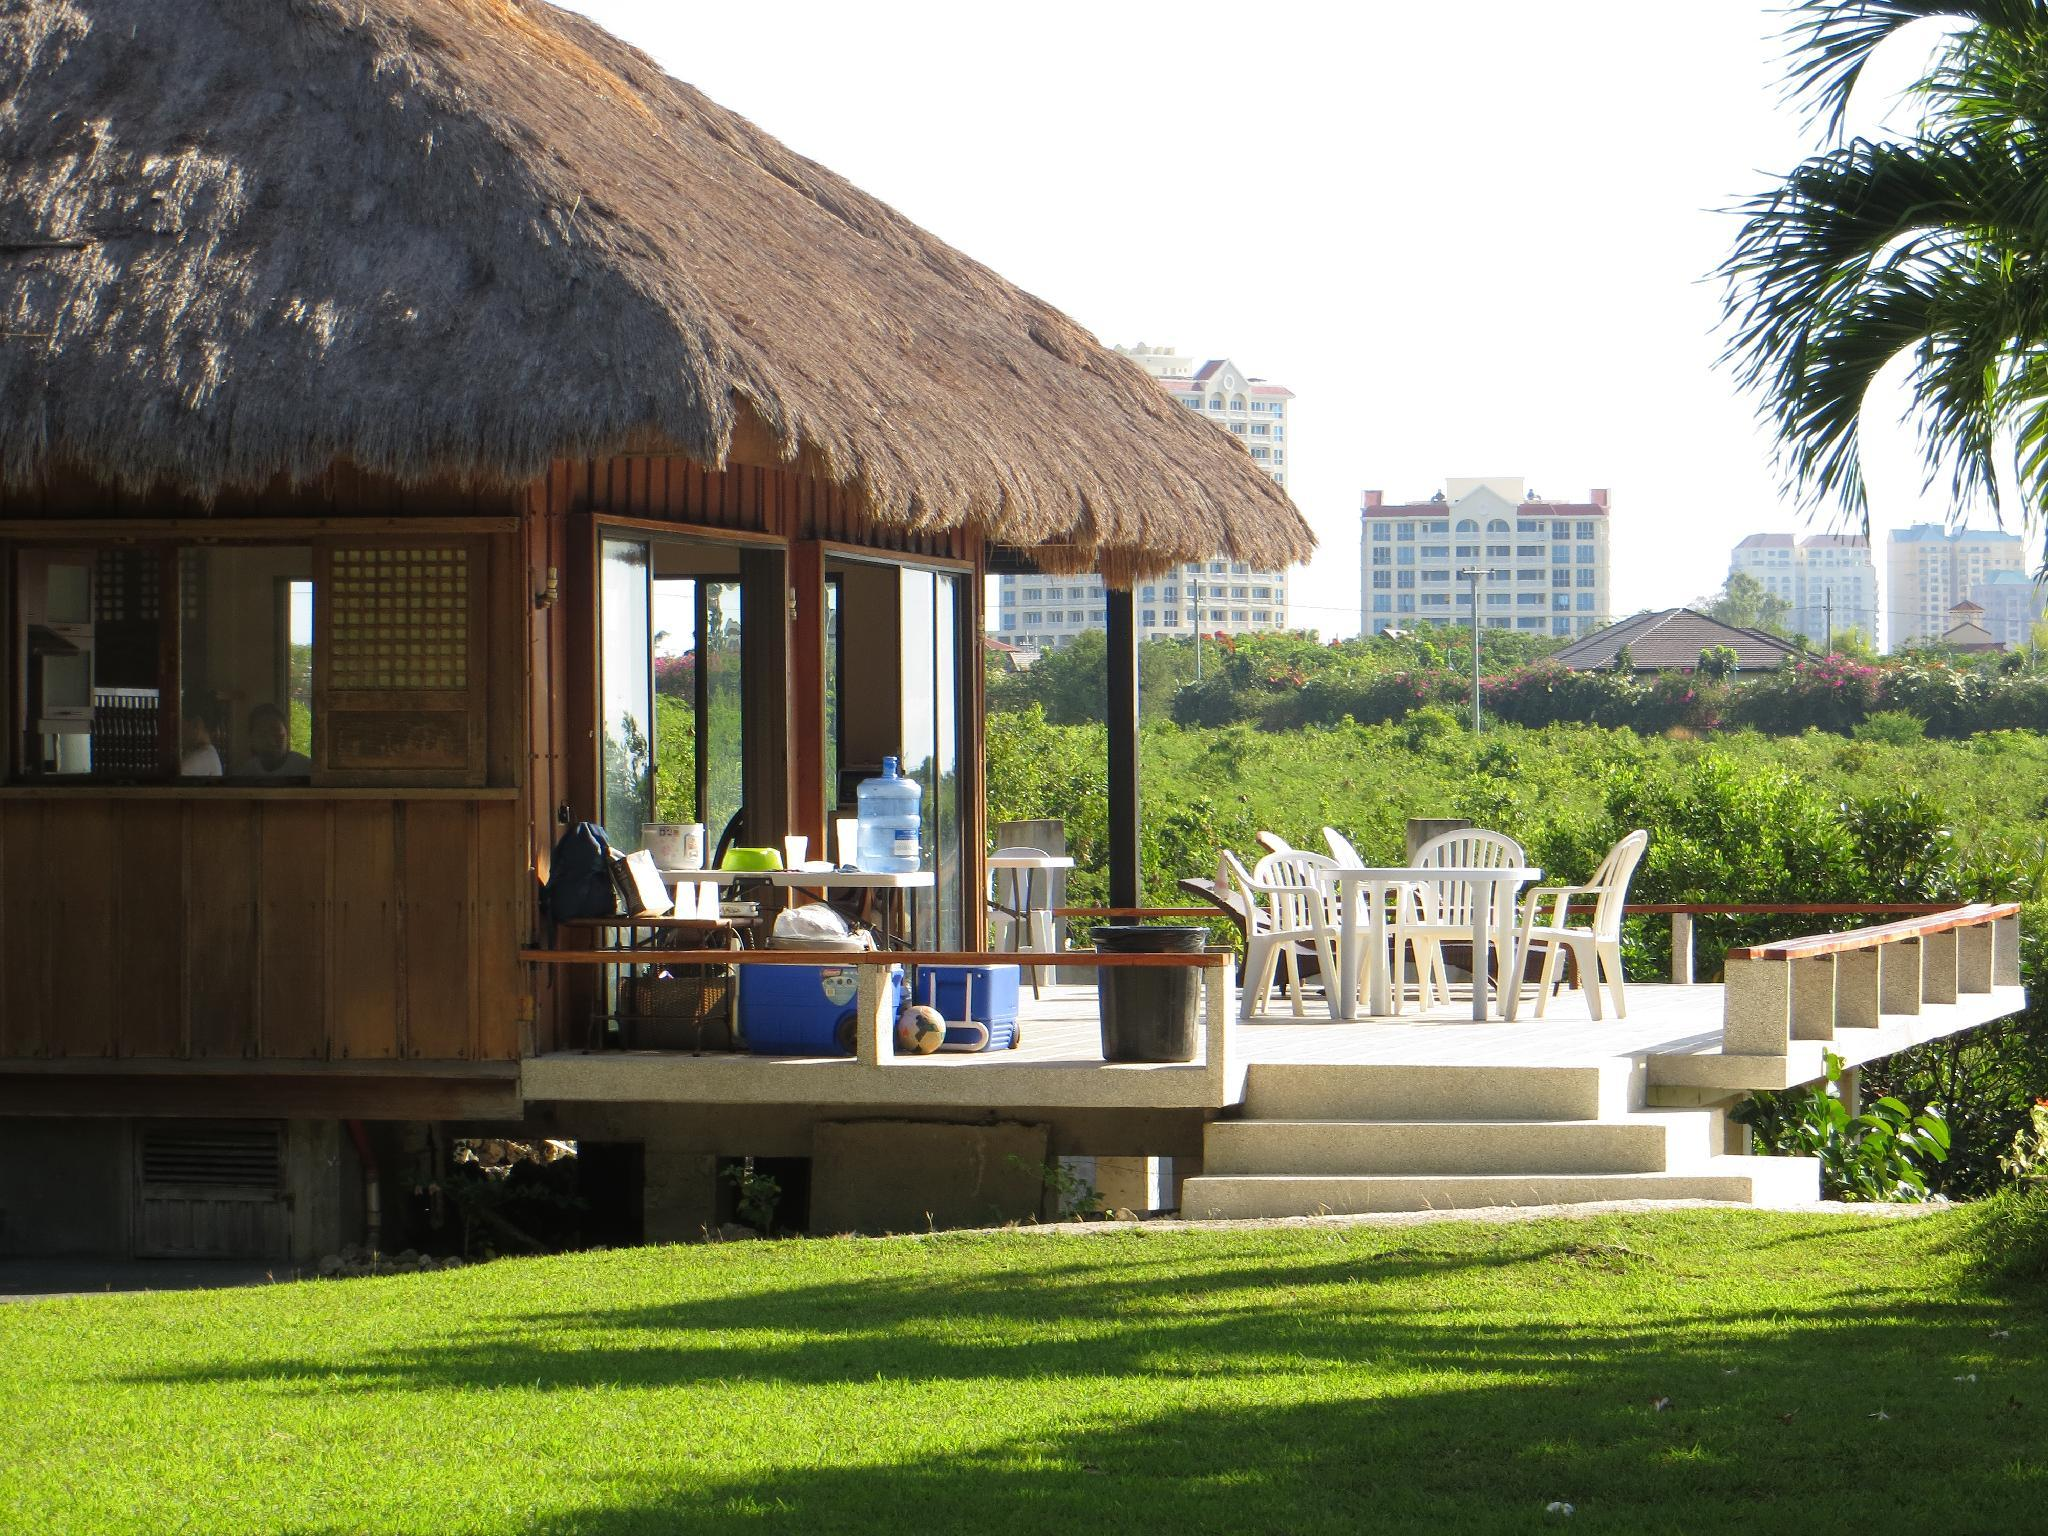 Climaco Beach (Beach House in Mactan Island) - Hotels Information/Map/Reviews/Reservation